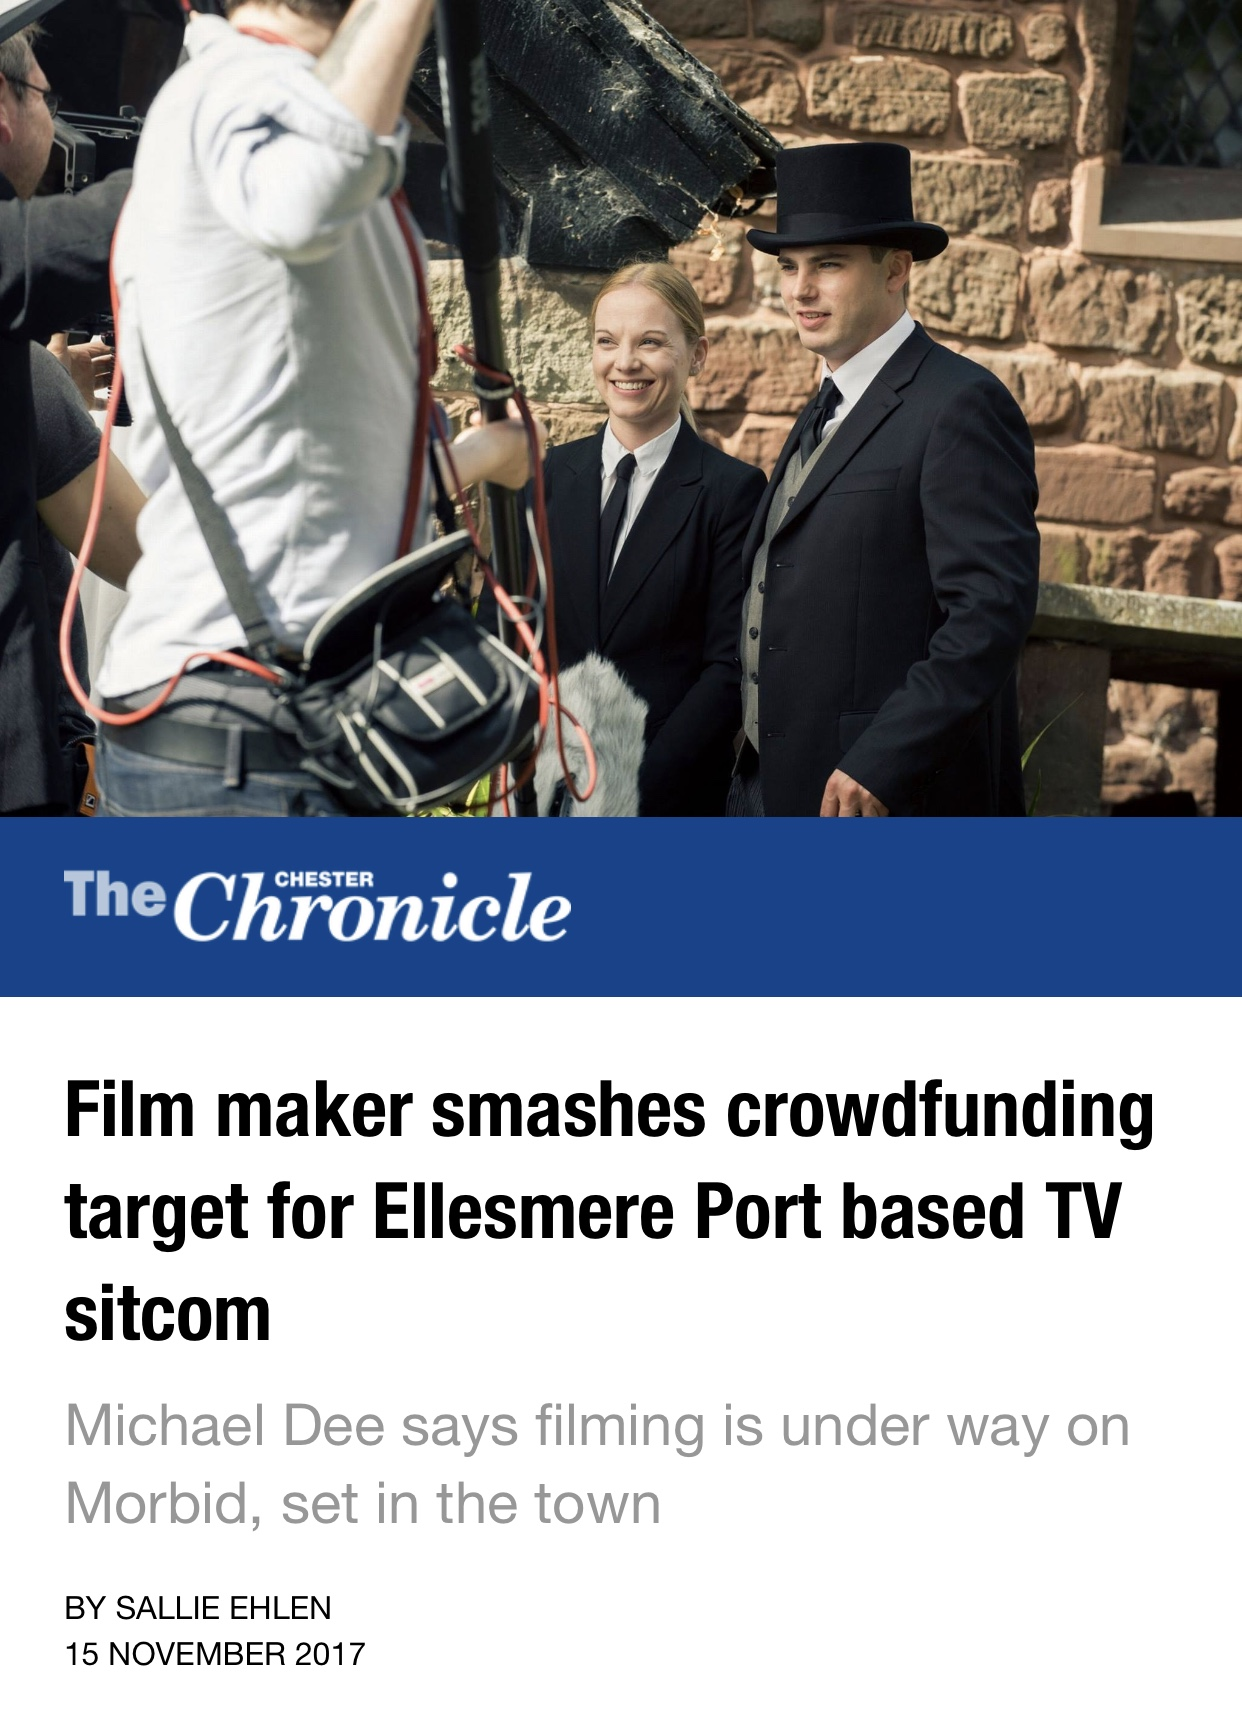 Independent Sitcom, Morbid hits local papers. Full article below.     http://www.chesterchronicle.co.uk/whats-on/film-news/film-maker-smashes-crowdfunding-target-13902757